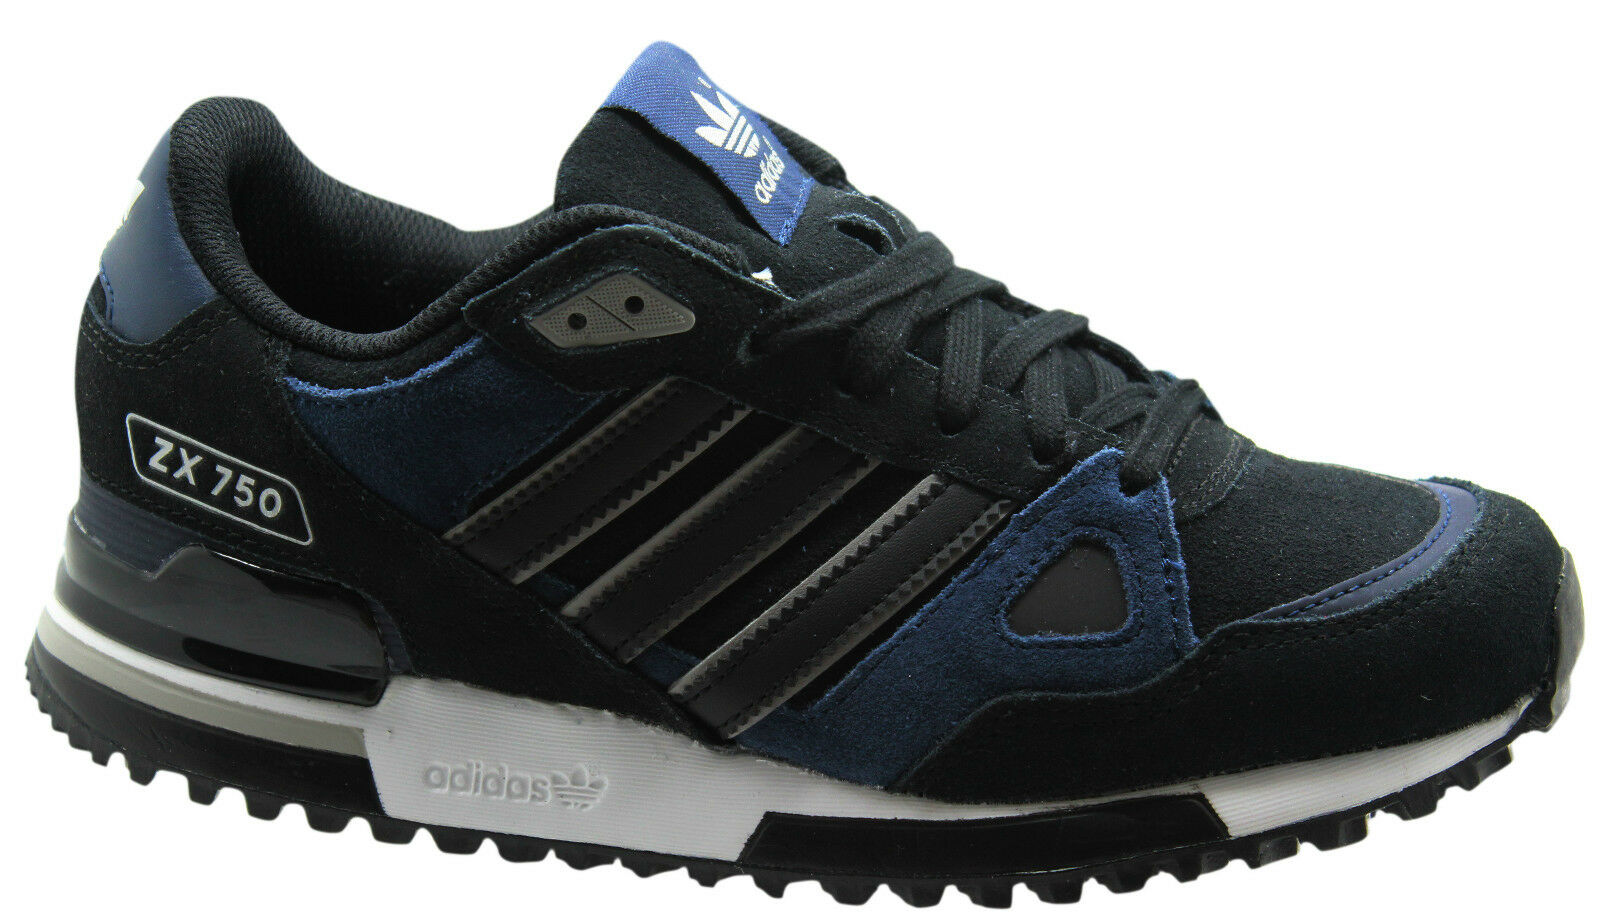 adidas originals zx 750 herren turnschuhe schwarz blau. Black Bedroom Furniture Sets. Home Design Ideas